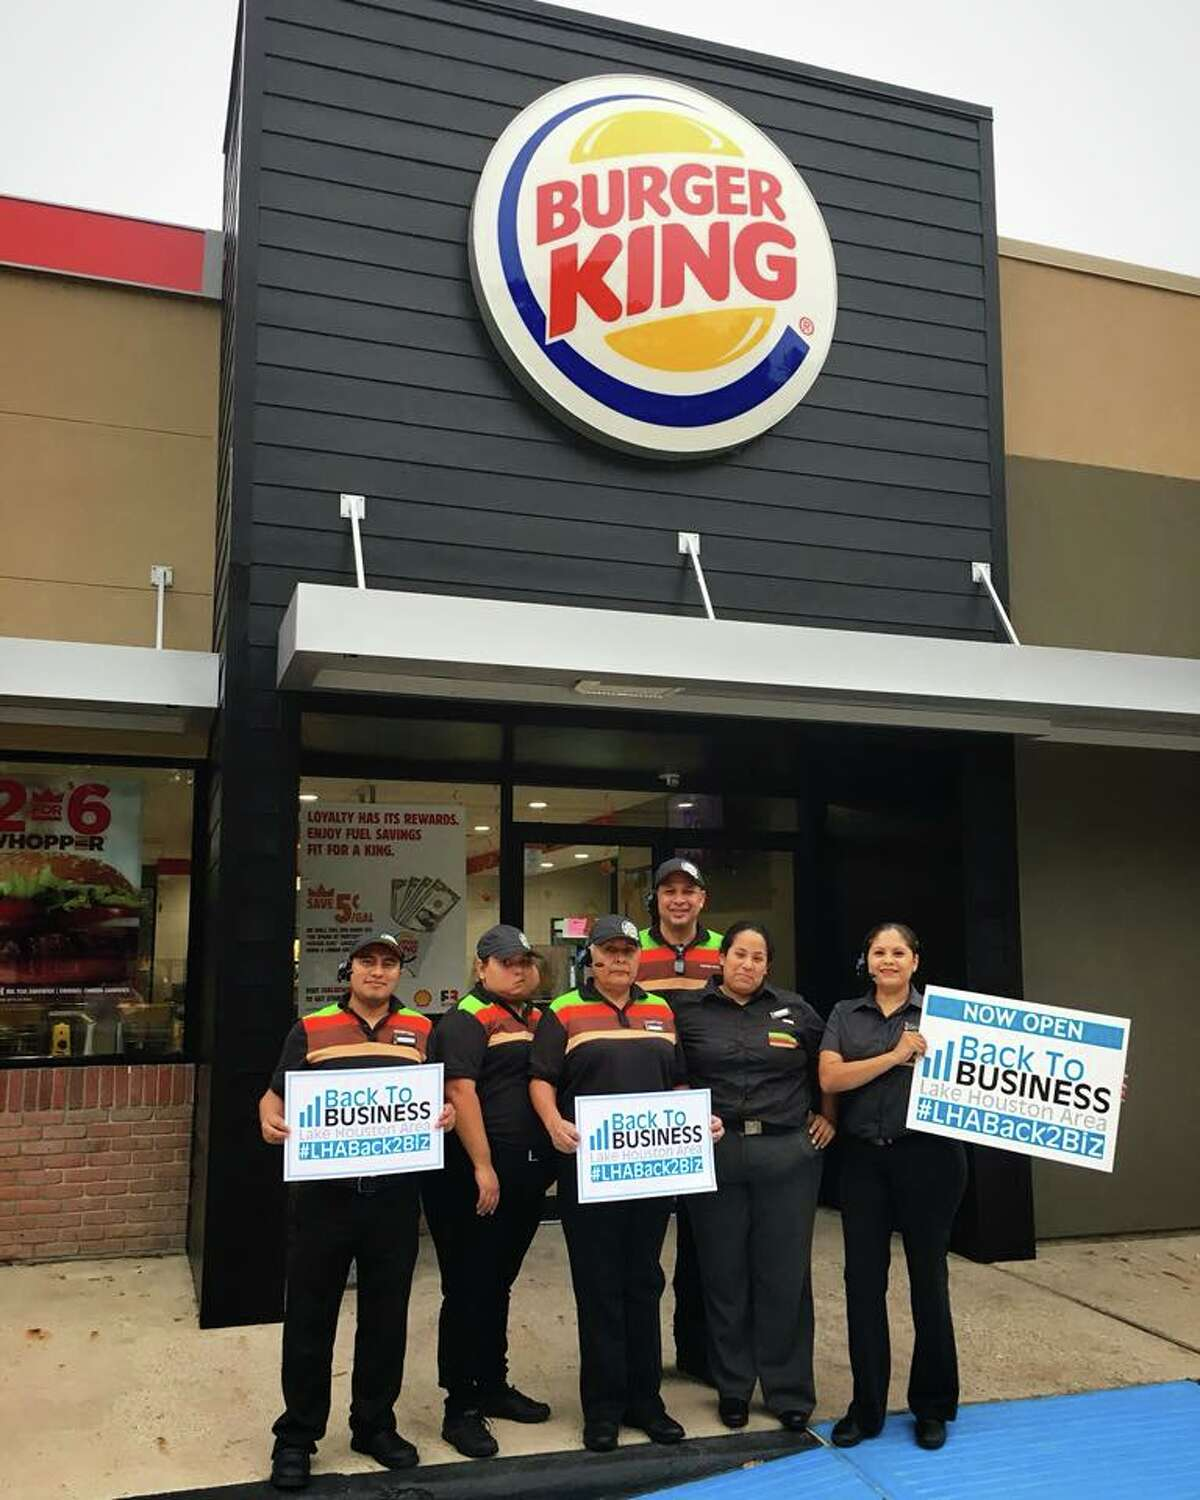 Burger King in Kingwood is back in business.